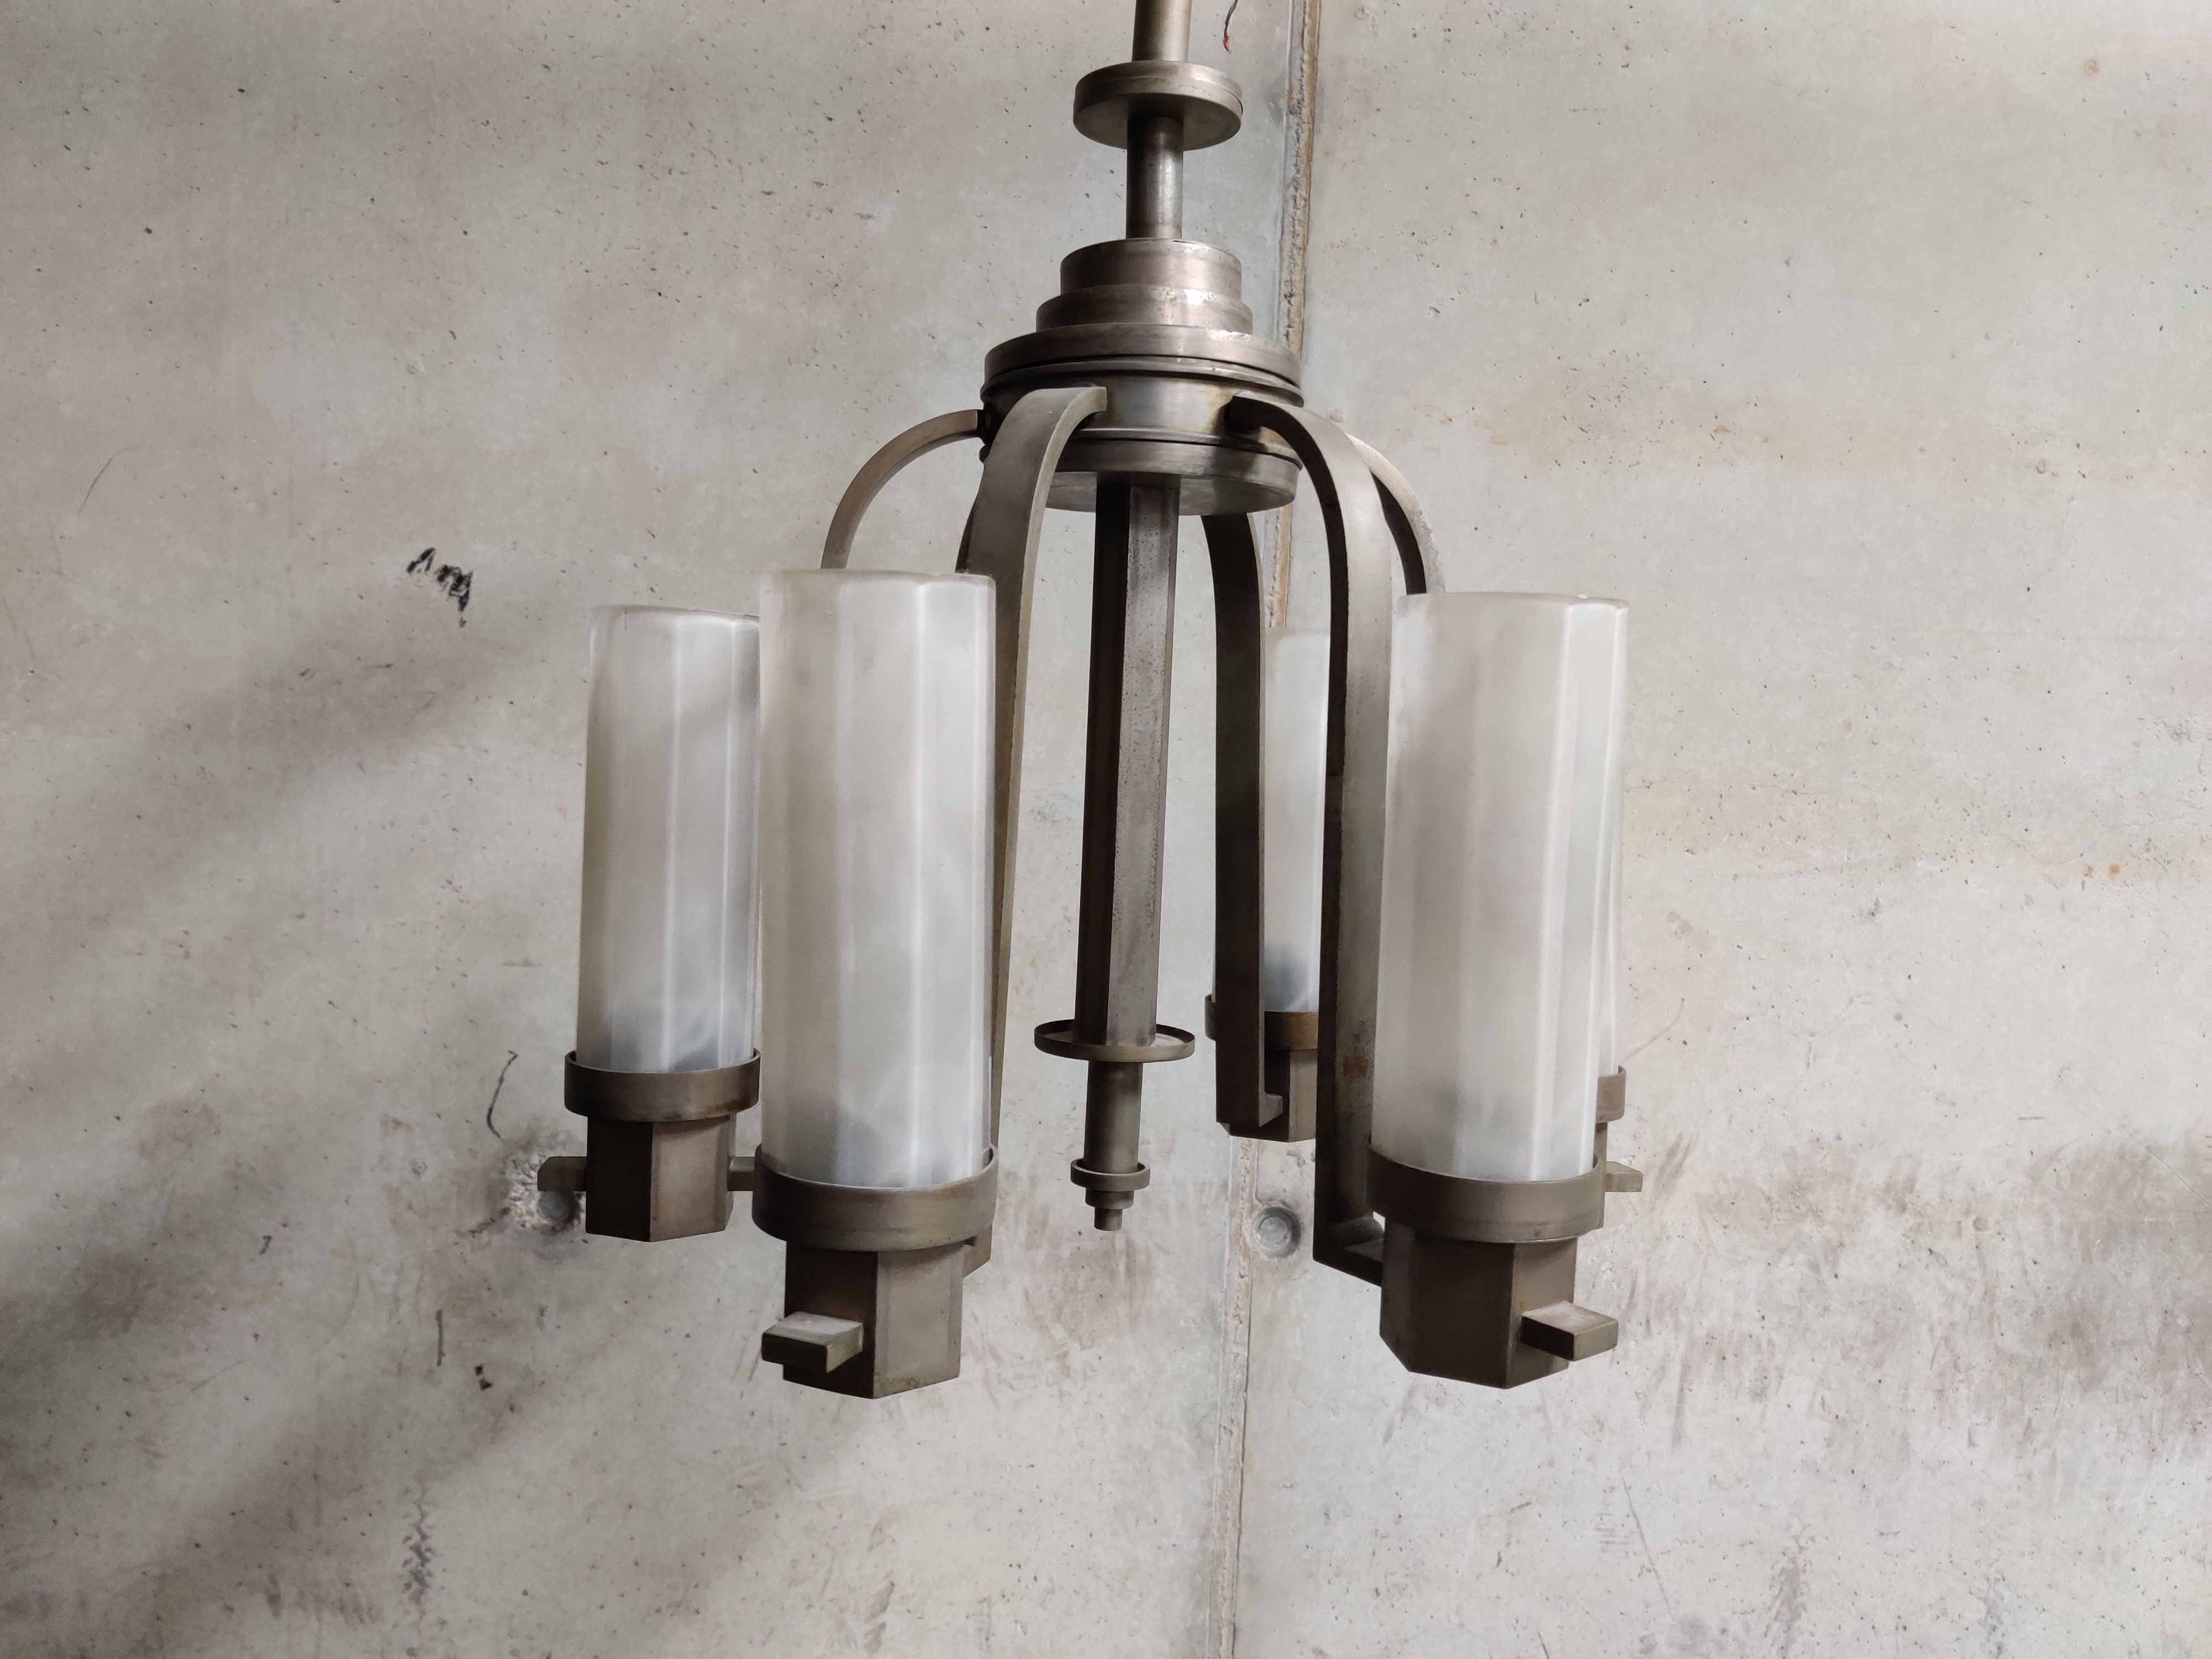 Picture of: Art Deco Chandelier With Frosted Glass Lamp Shades 1930s Vinterior